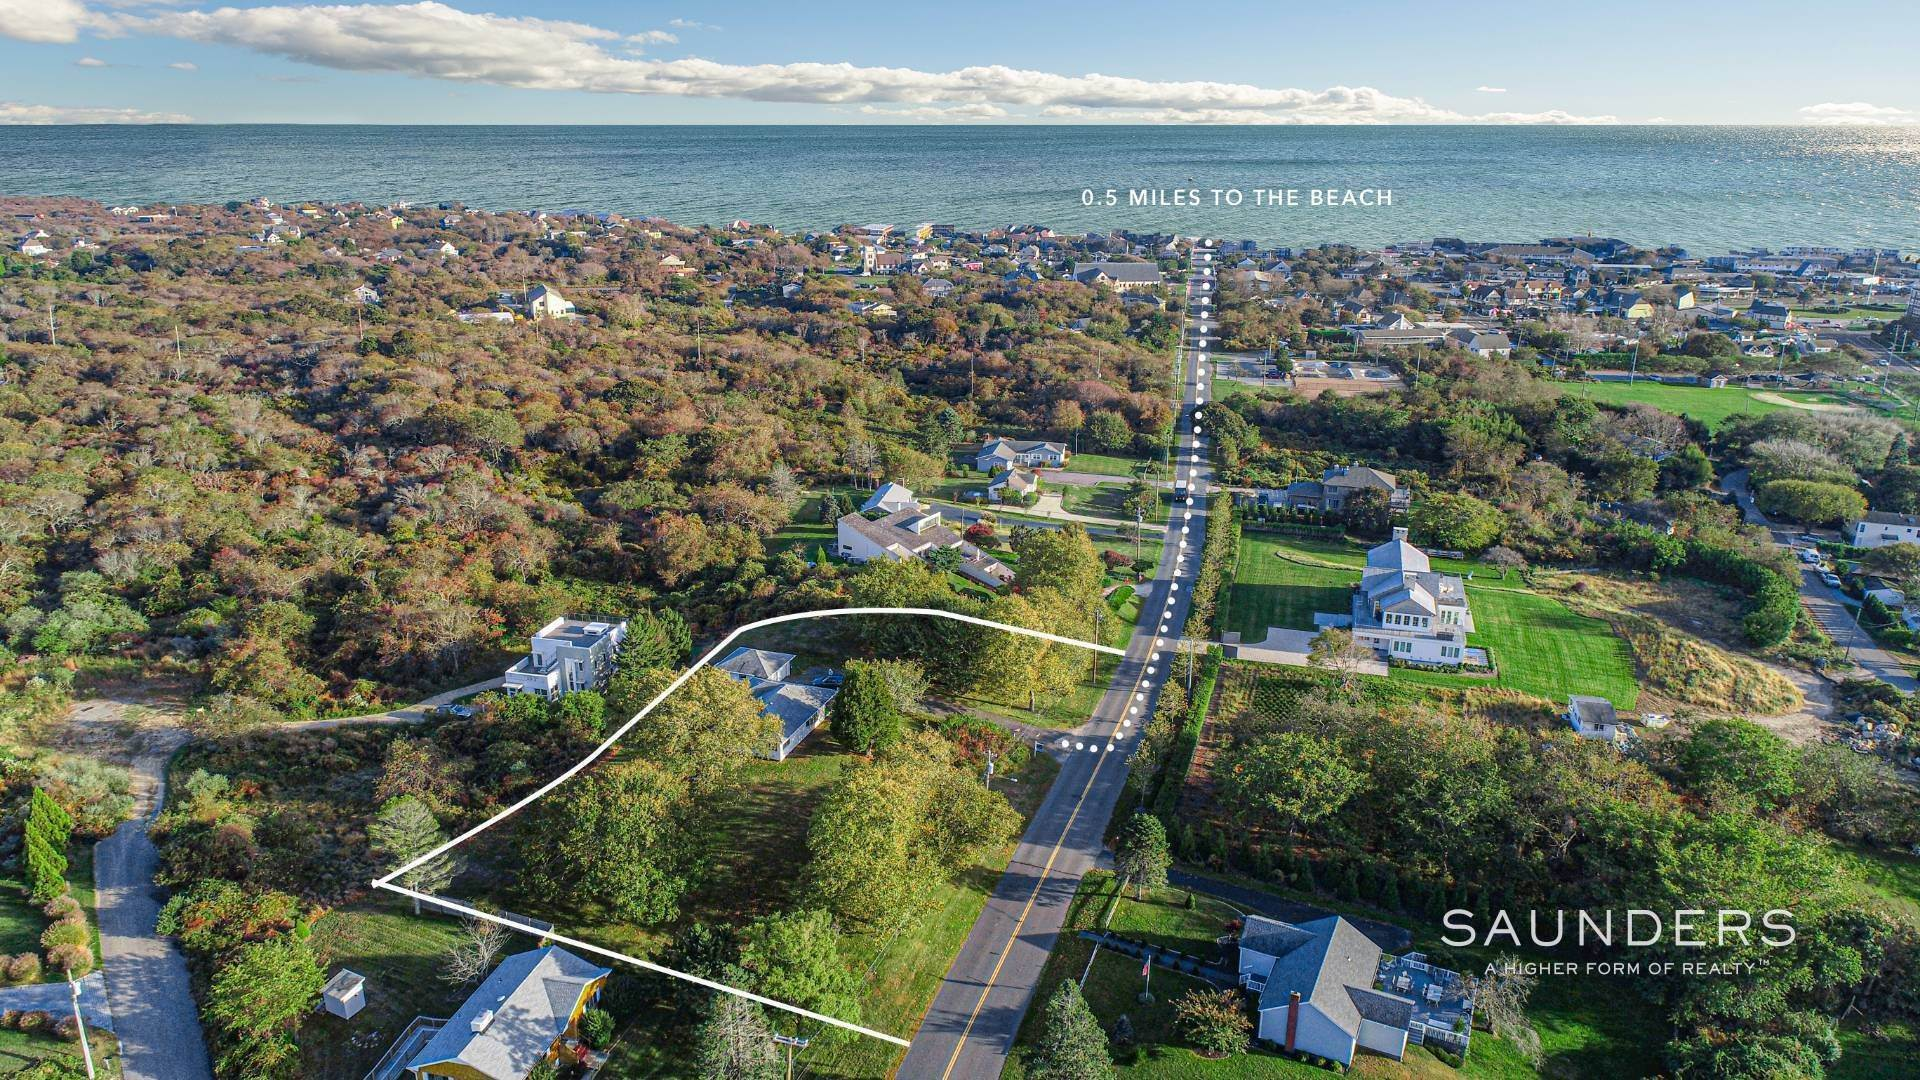 Single Family Homes for Sale at Montauk Hilltop 144 South Essex Street, Montauk, East Hampton Town, NY 11954